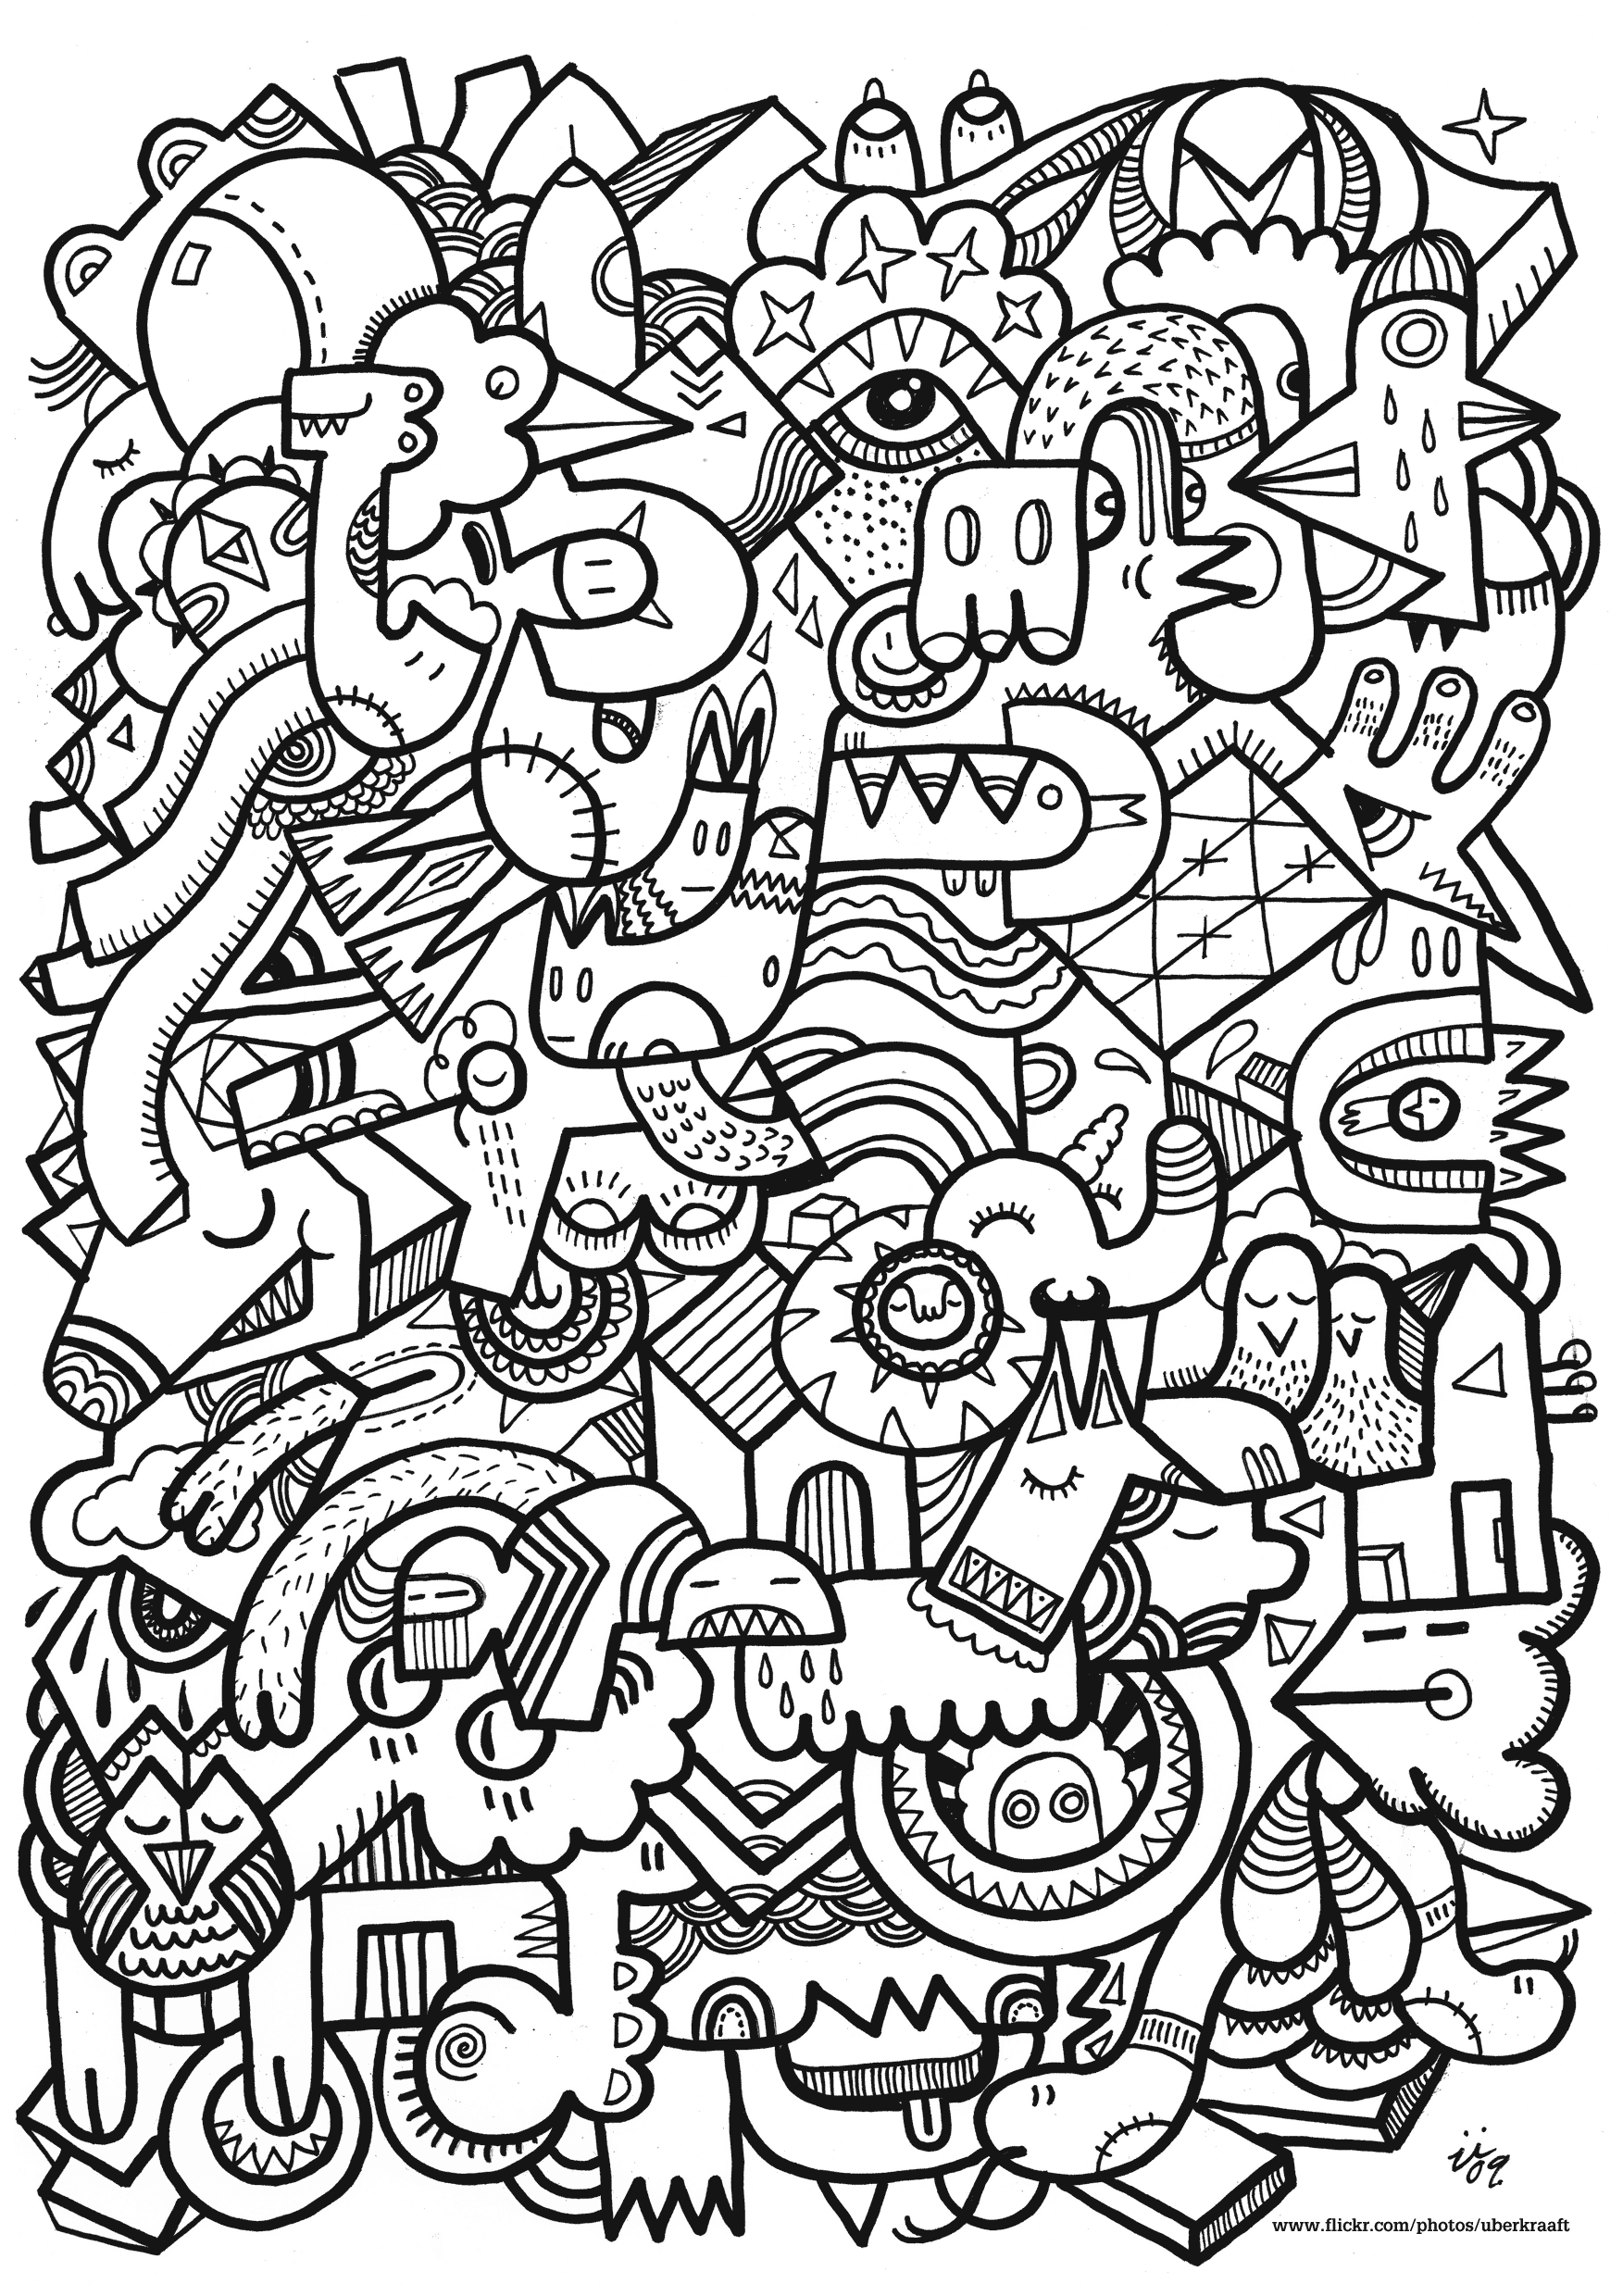 Coloring book outlines - Crazy Faces Coloring Page